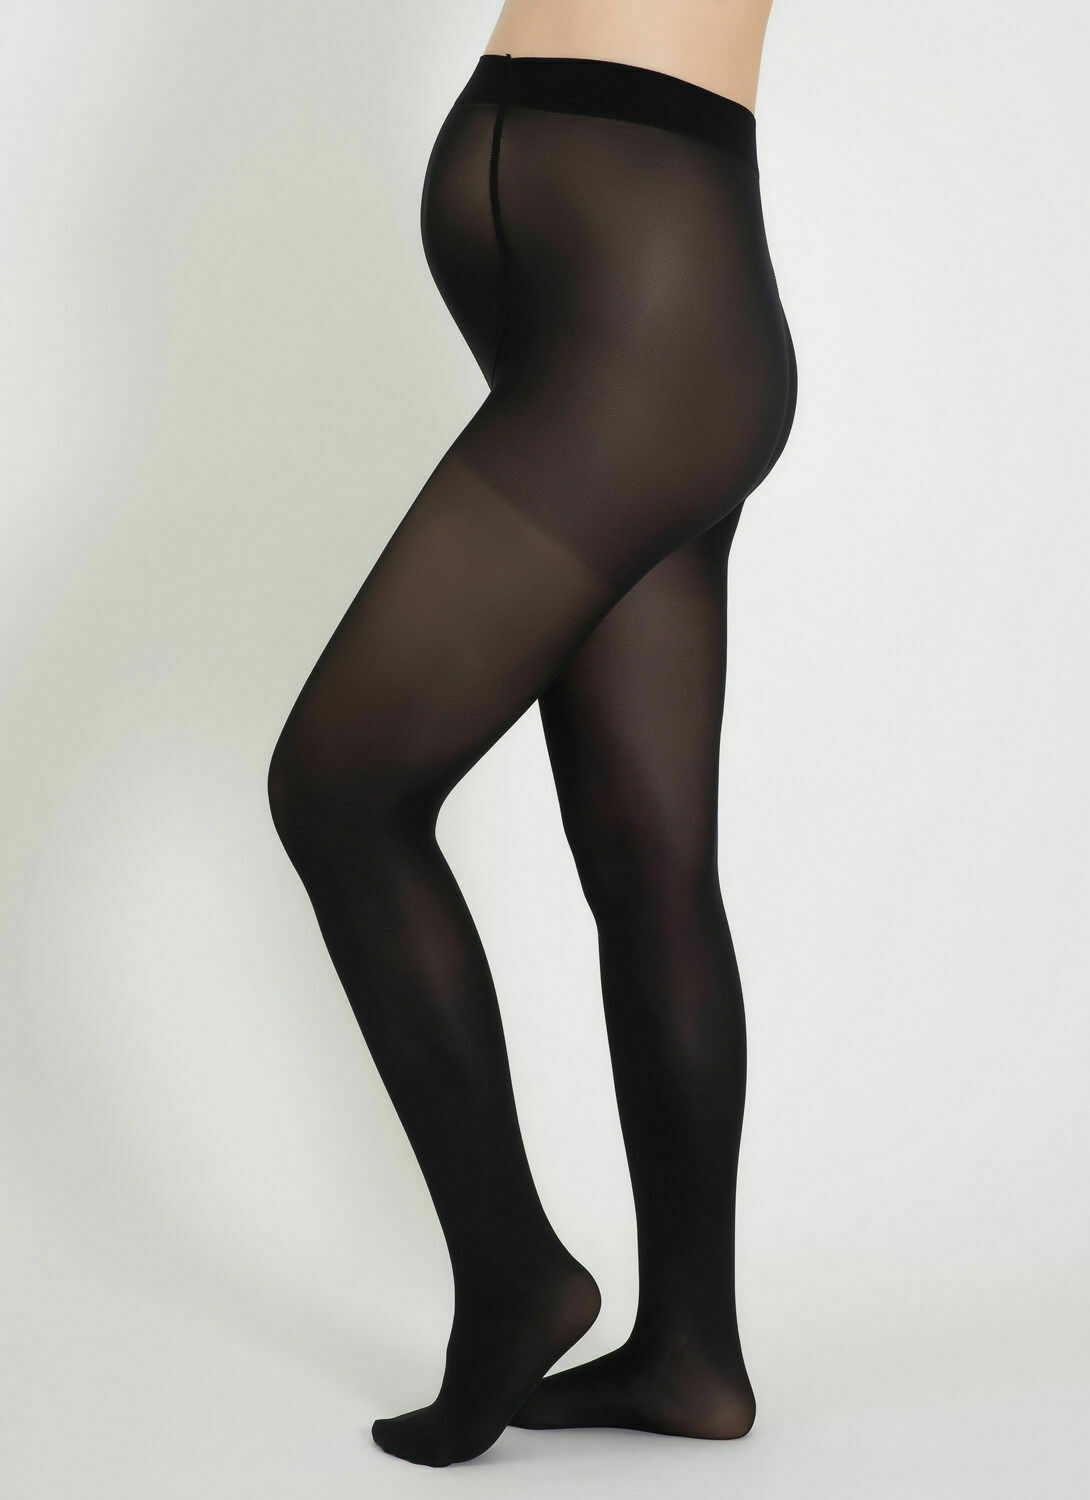 Bellissima-Women-039-s-Maternity-Tights-Black-50-den-Pregnancy-Hosiery thumbnail 8